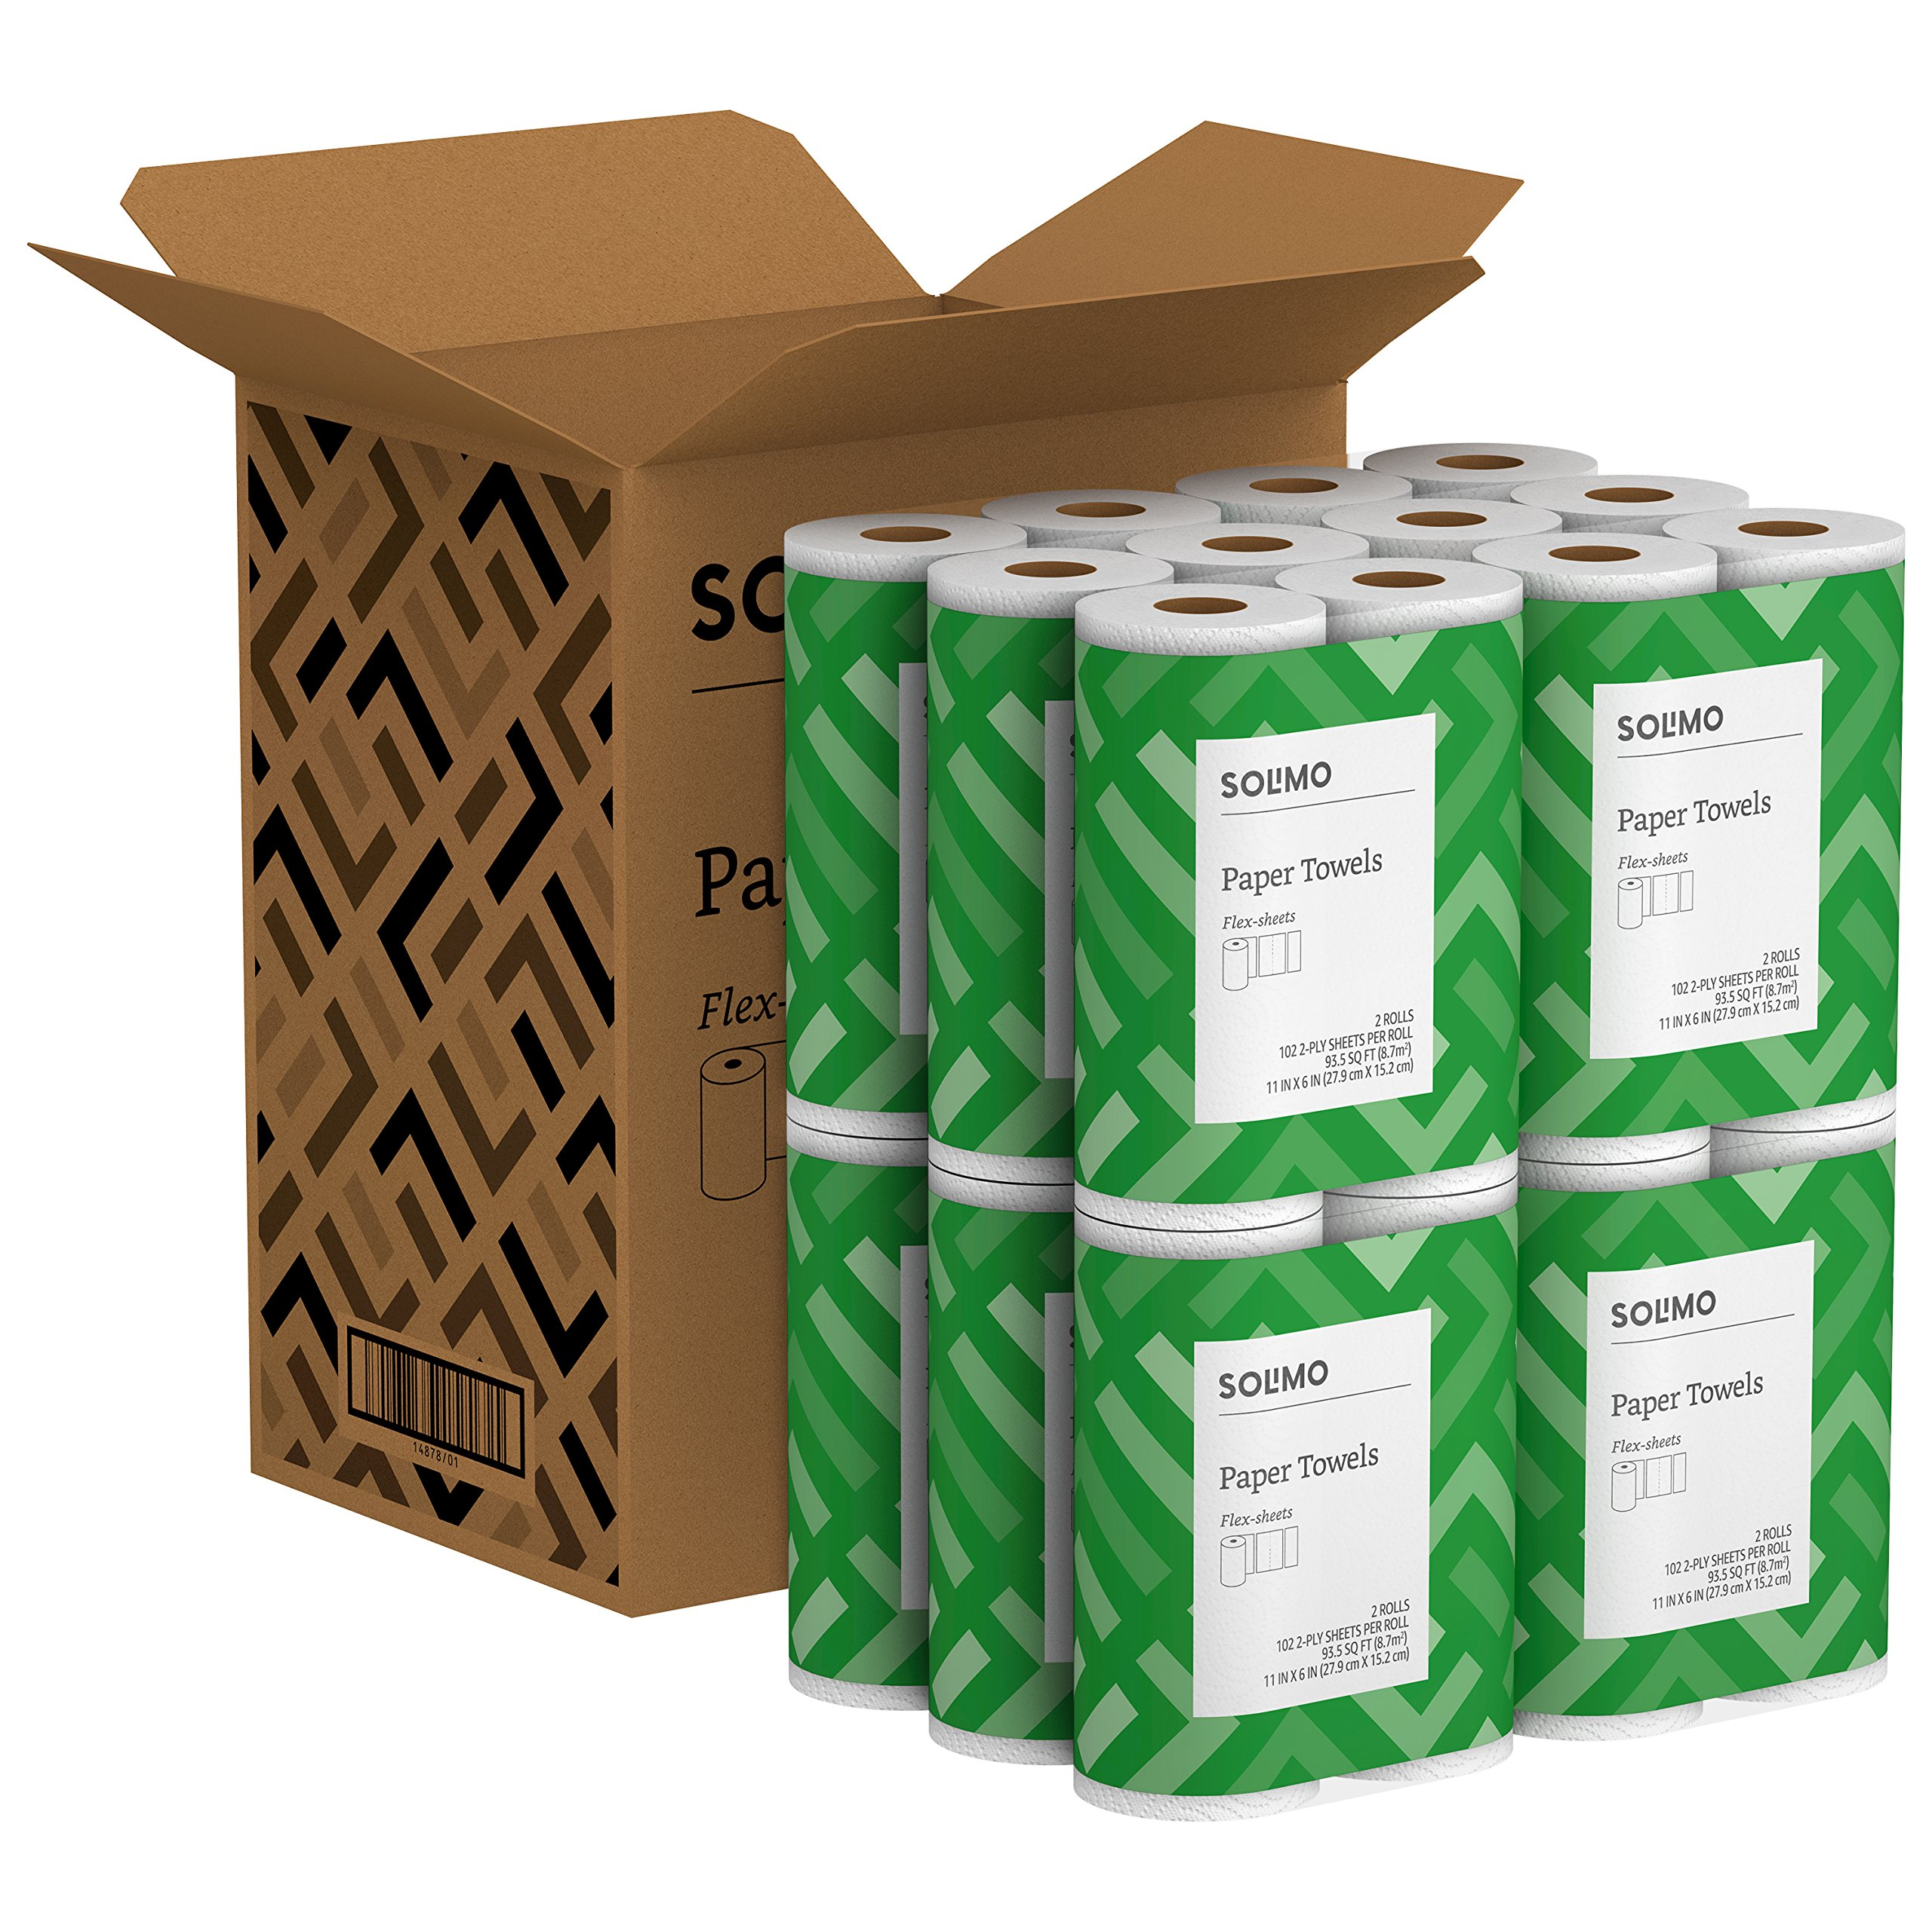 Solimo Basic Flex-Sheets Paper Towels, 24 Value Rolls, White, 102 Sheets per Roll by Solimo (Image #5)